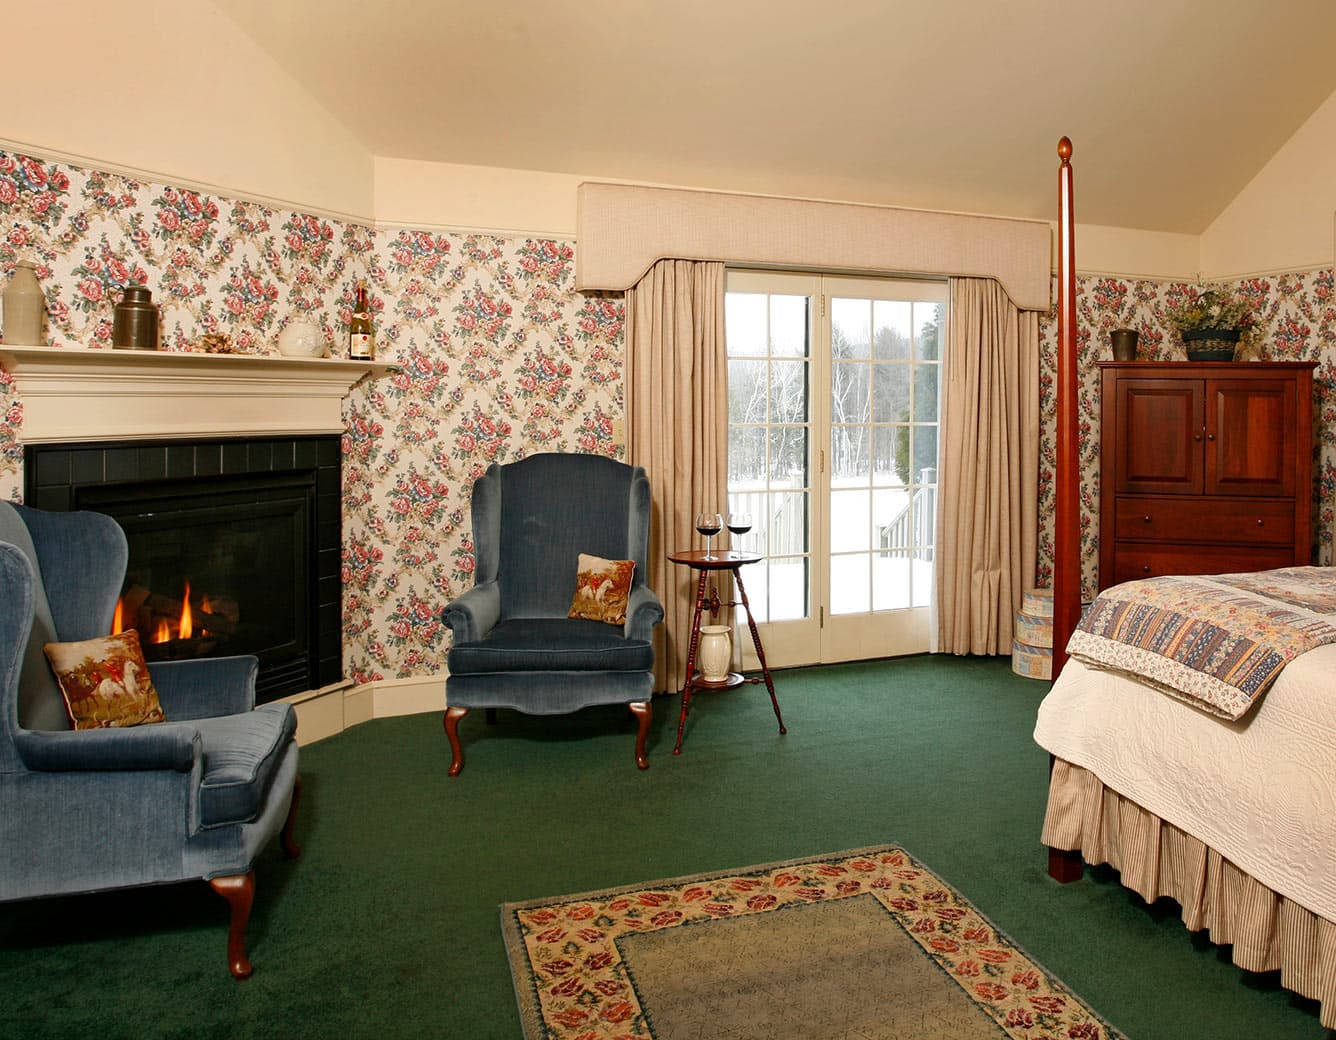 Fireplace with Two chairs, french doors, and Bed in Room 19